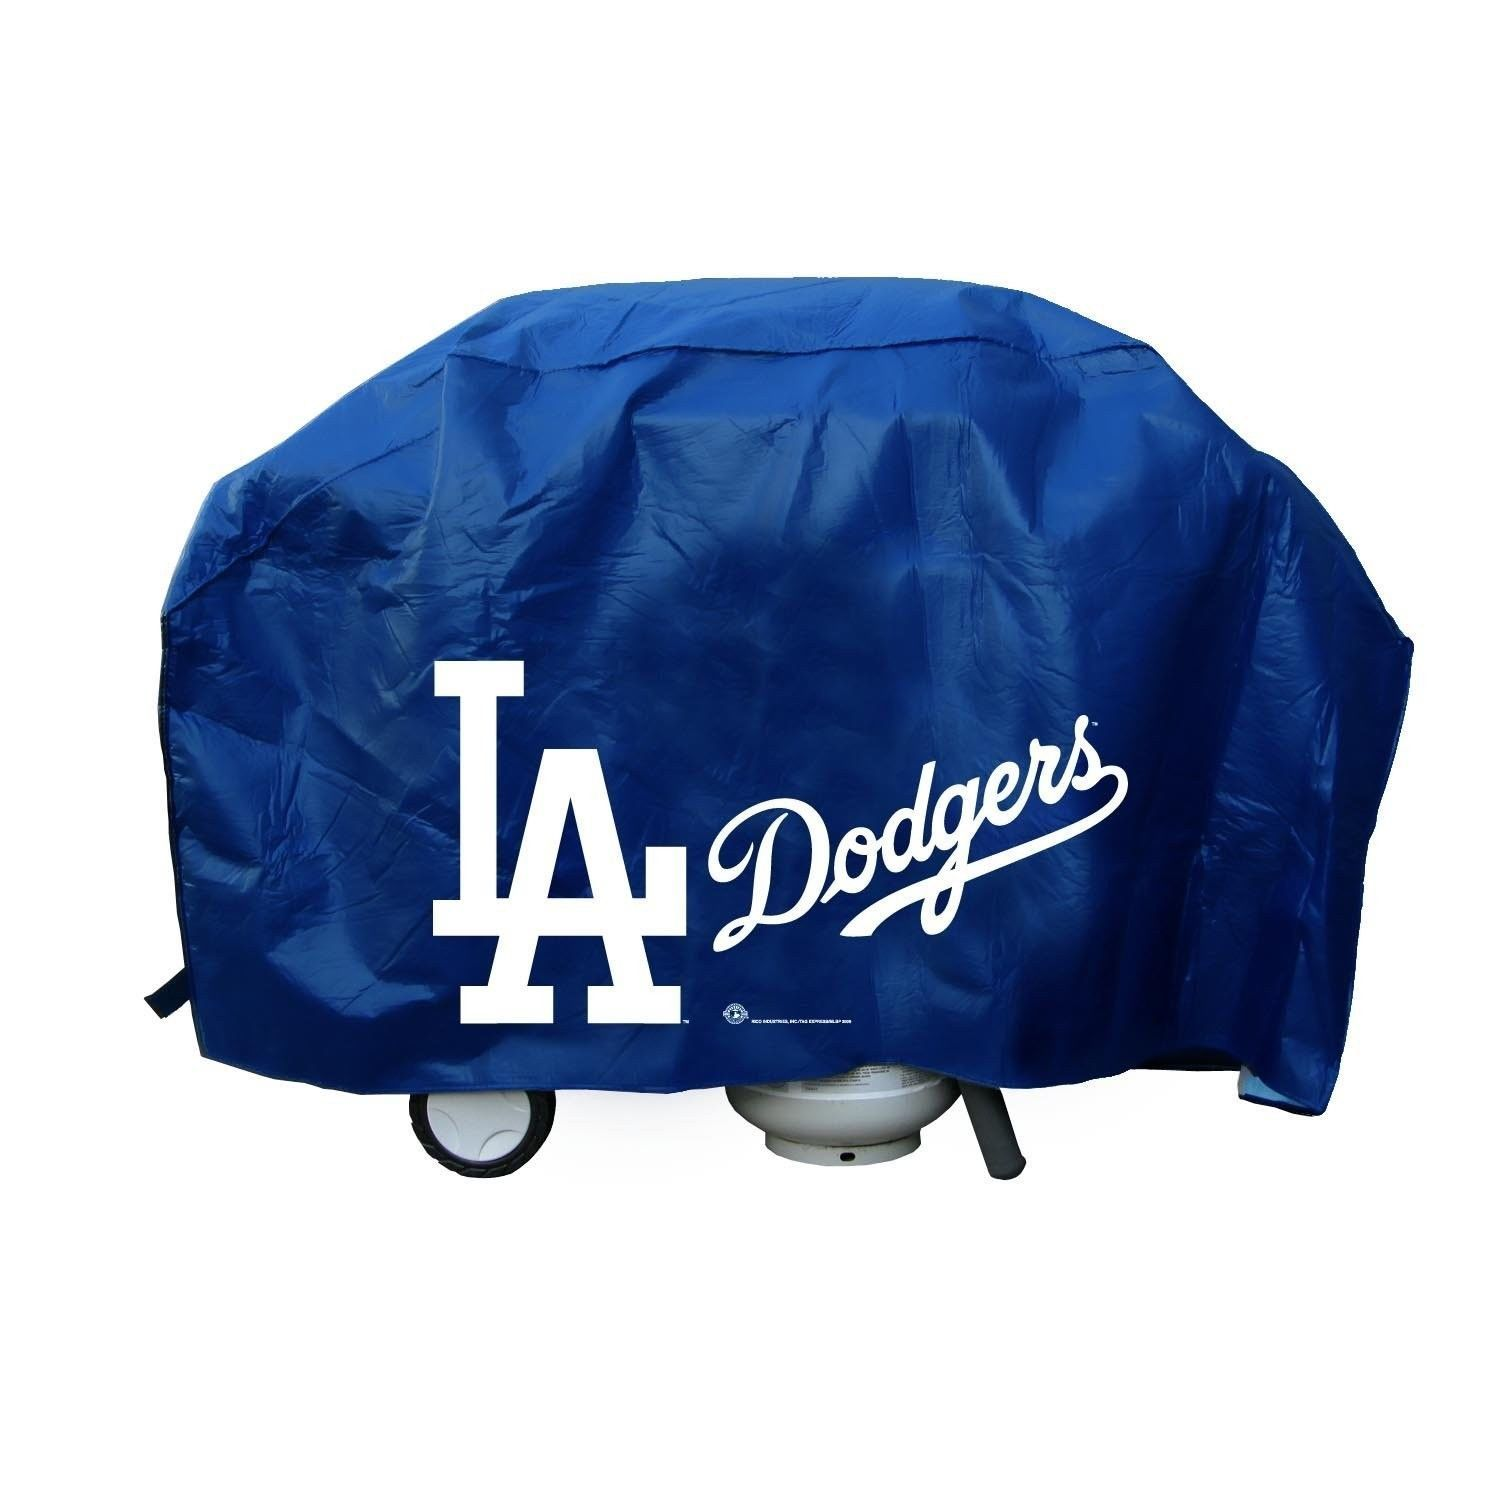 LOS ANGELES DODGERS ECONOMY BBQ BARBEQUE GRILL COVER COOKING MLB BASEBALL